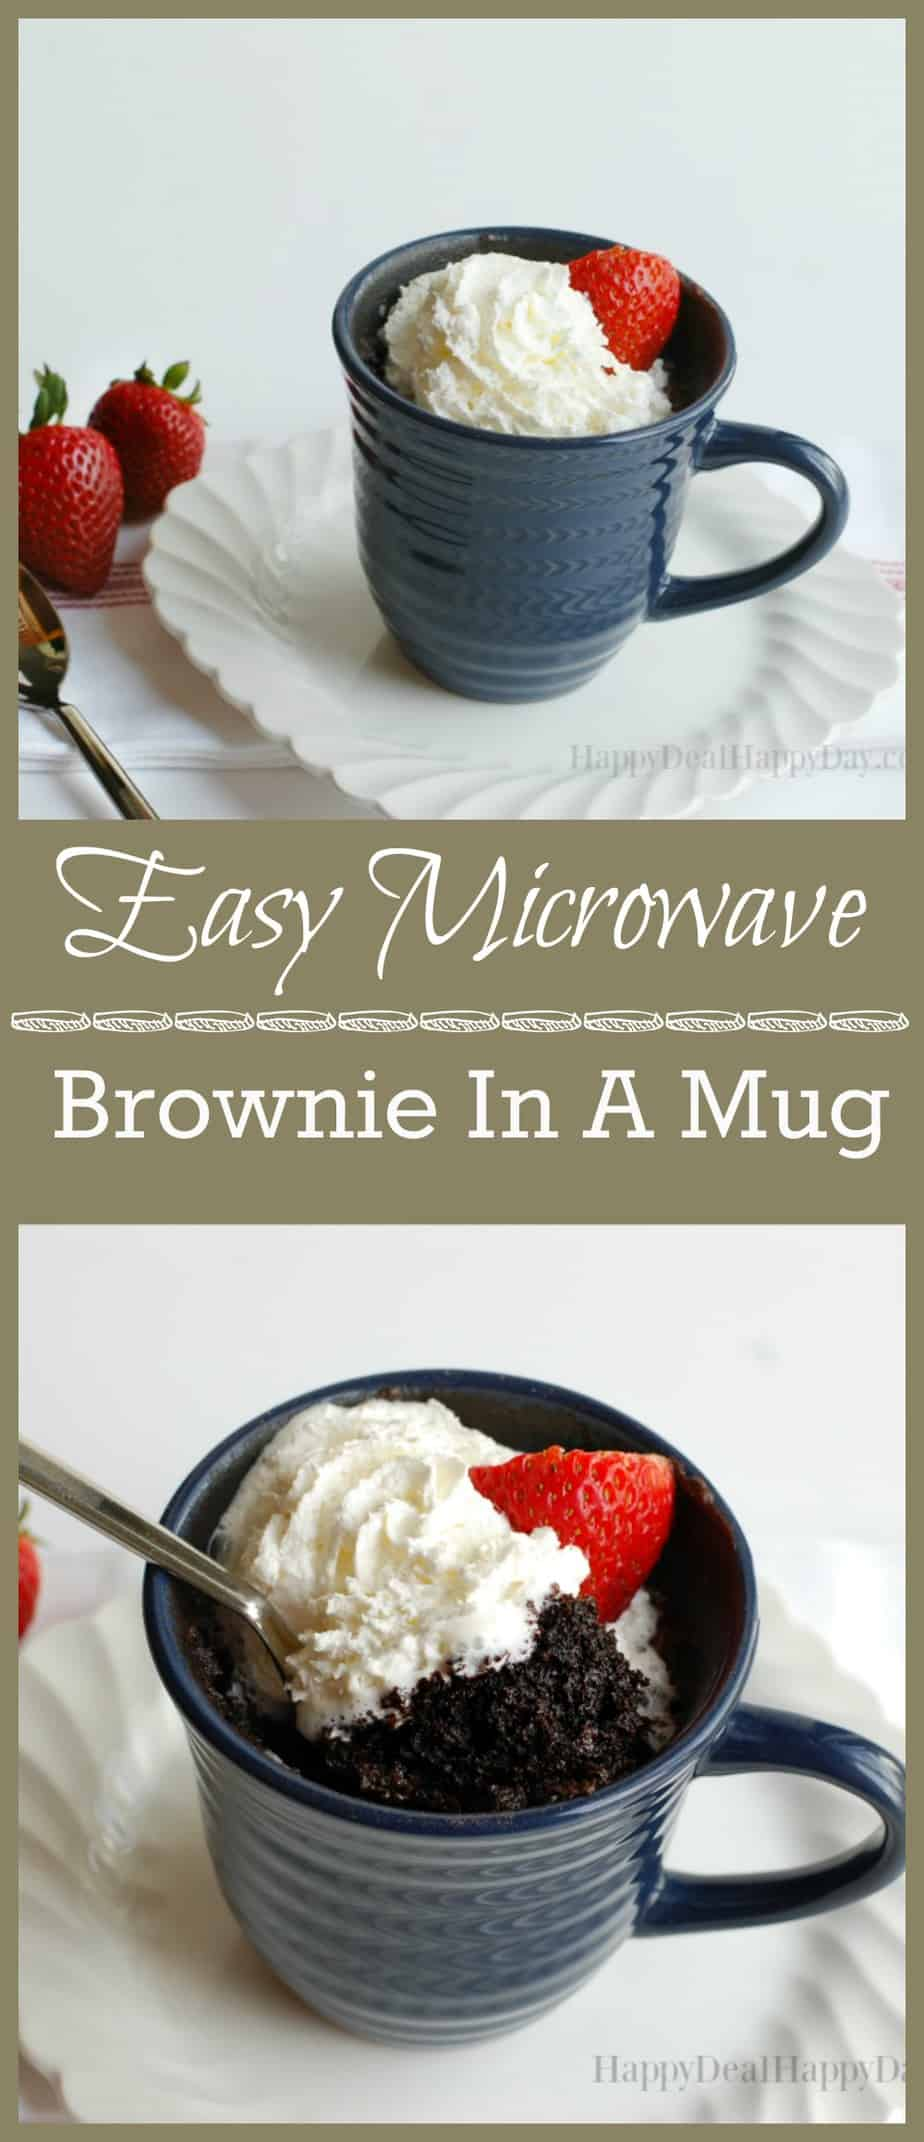 90 Second Easy Dessert Recipe Microwave Brownie In A Mug Recipe Happy Deal Happy Day